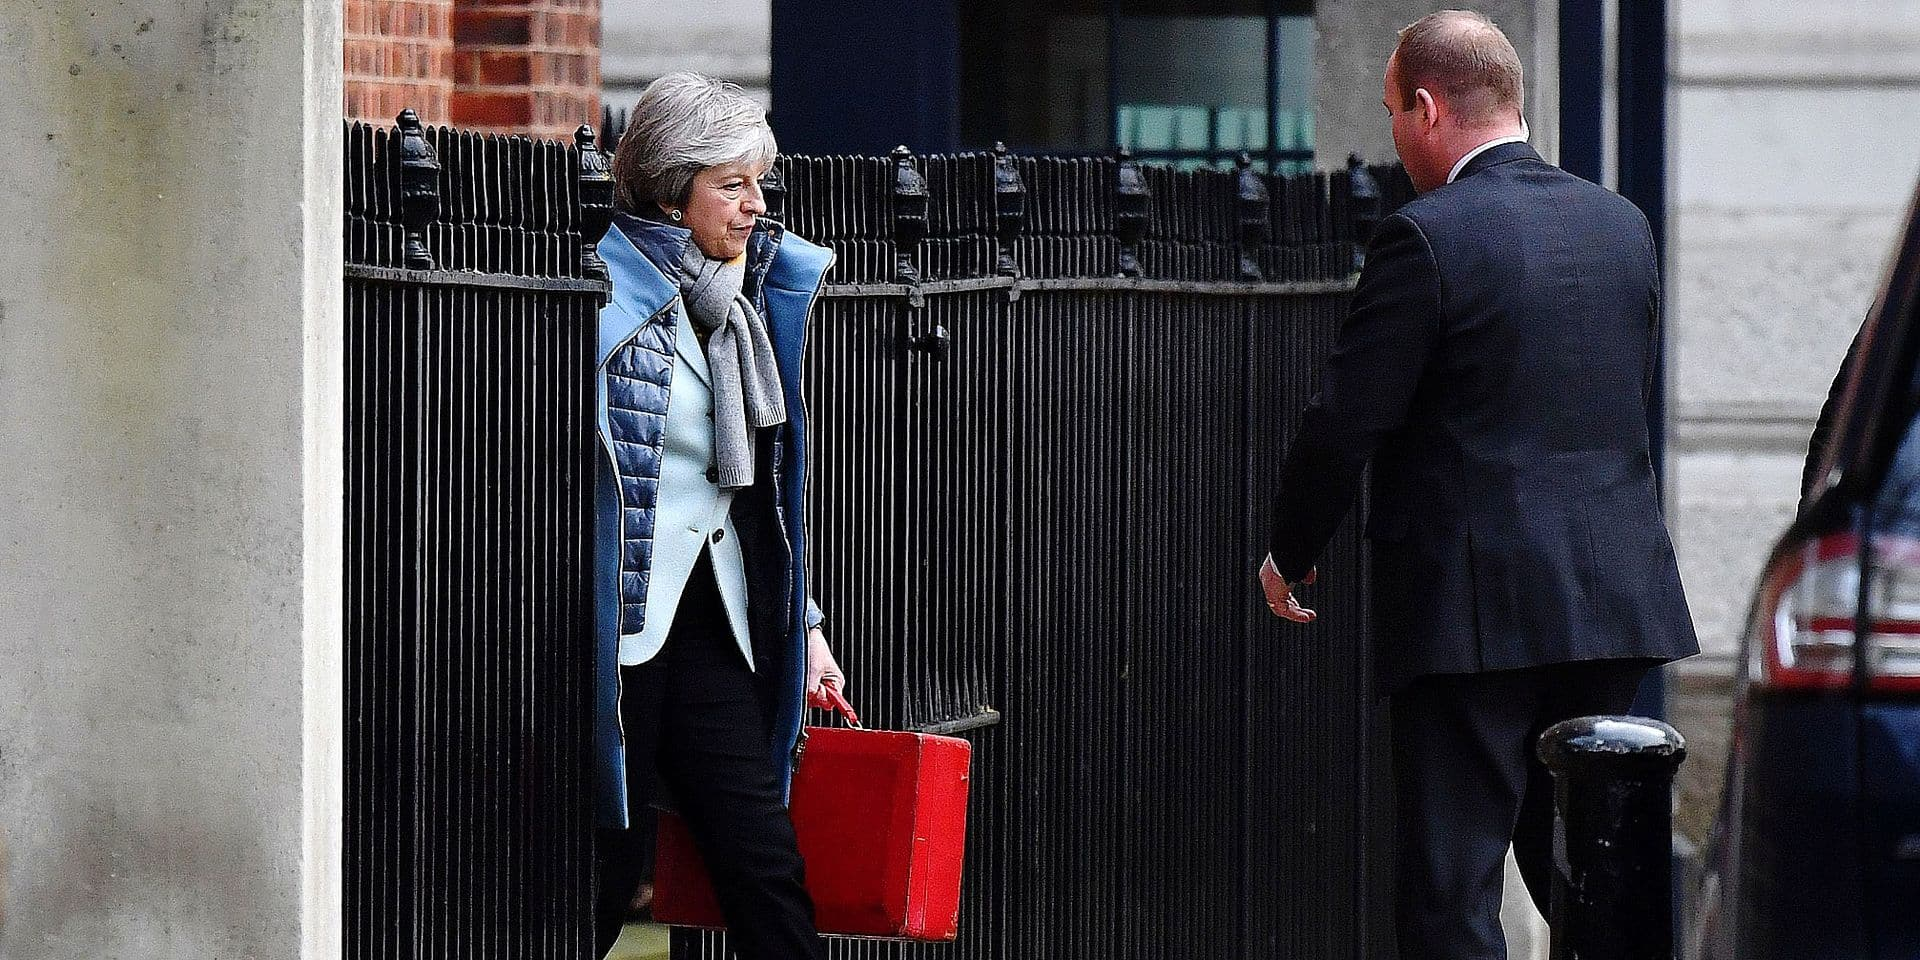 """Britain's Prime Minister Theresa May (L) leaves from the rear of 10 Downing Street in central London on January 18, 2019. - British Prime Minister Theresa May scrambled to put together a new Brexit strategy after MPs rejected her EU divorce deal, and insisted she could not rule out a potentially damaging """"no-deal"""" split. (Photo by Ben STANSALL / AFP)"""